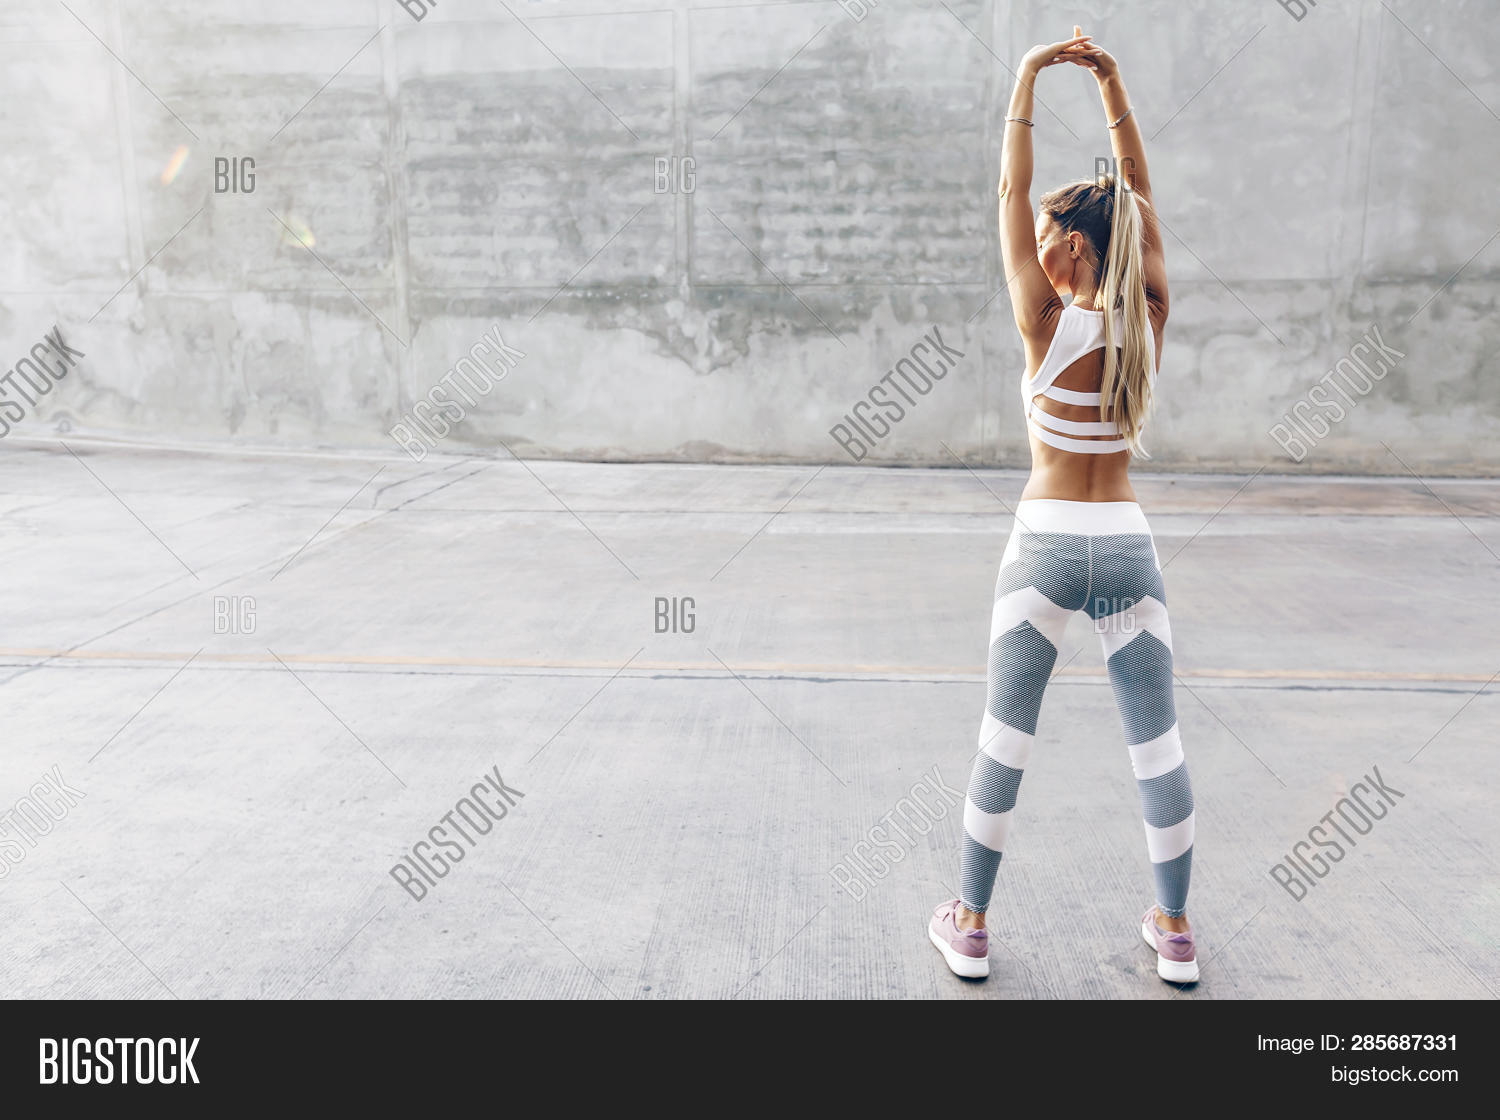 action,activity,back,background,city,clothes,concrete,cool,cross,exercise,fashion,feet,female,fit,fitness,girl,gray,gym,human,jogger,leggings,legs,leisure,life,model,outdoor,outfit,outside,people,rear,shoes,slim,sport,sportswear,sporty,squat,street,stretching,style,stylish,training,urban,wall,wear,woman,workout,young